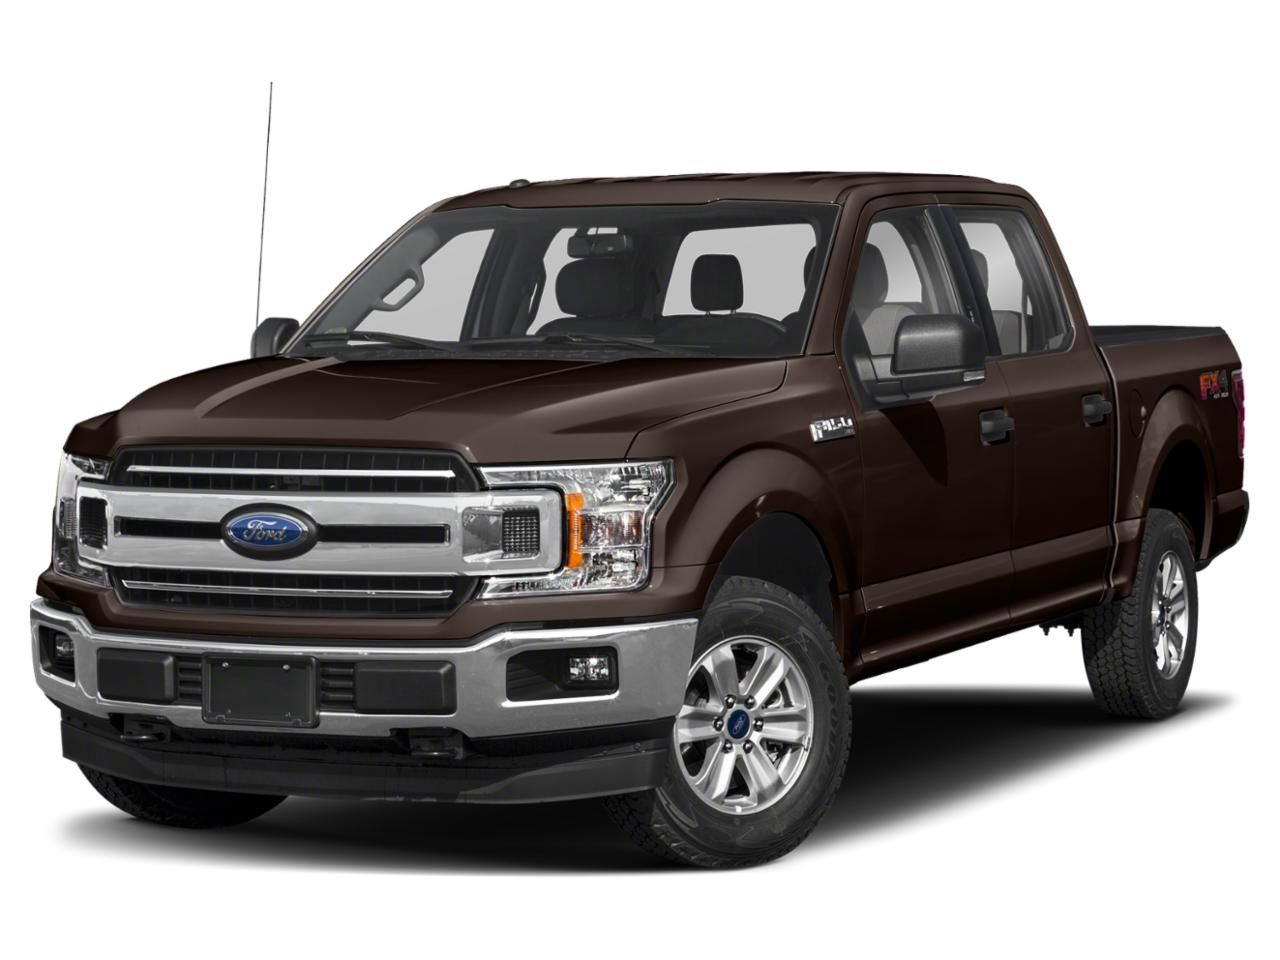 2018 Ford F-150 Vehicle Photo in Clarksville, MD 21029